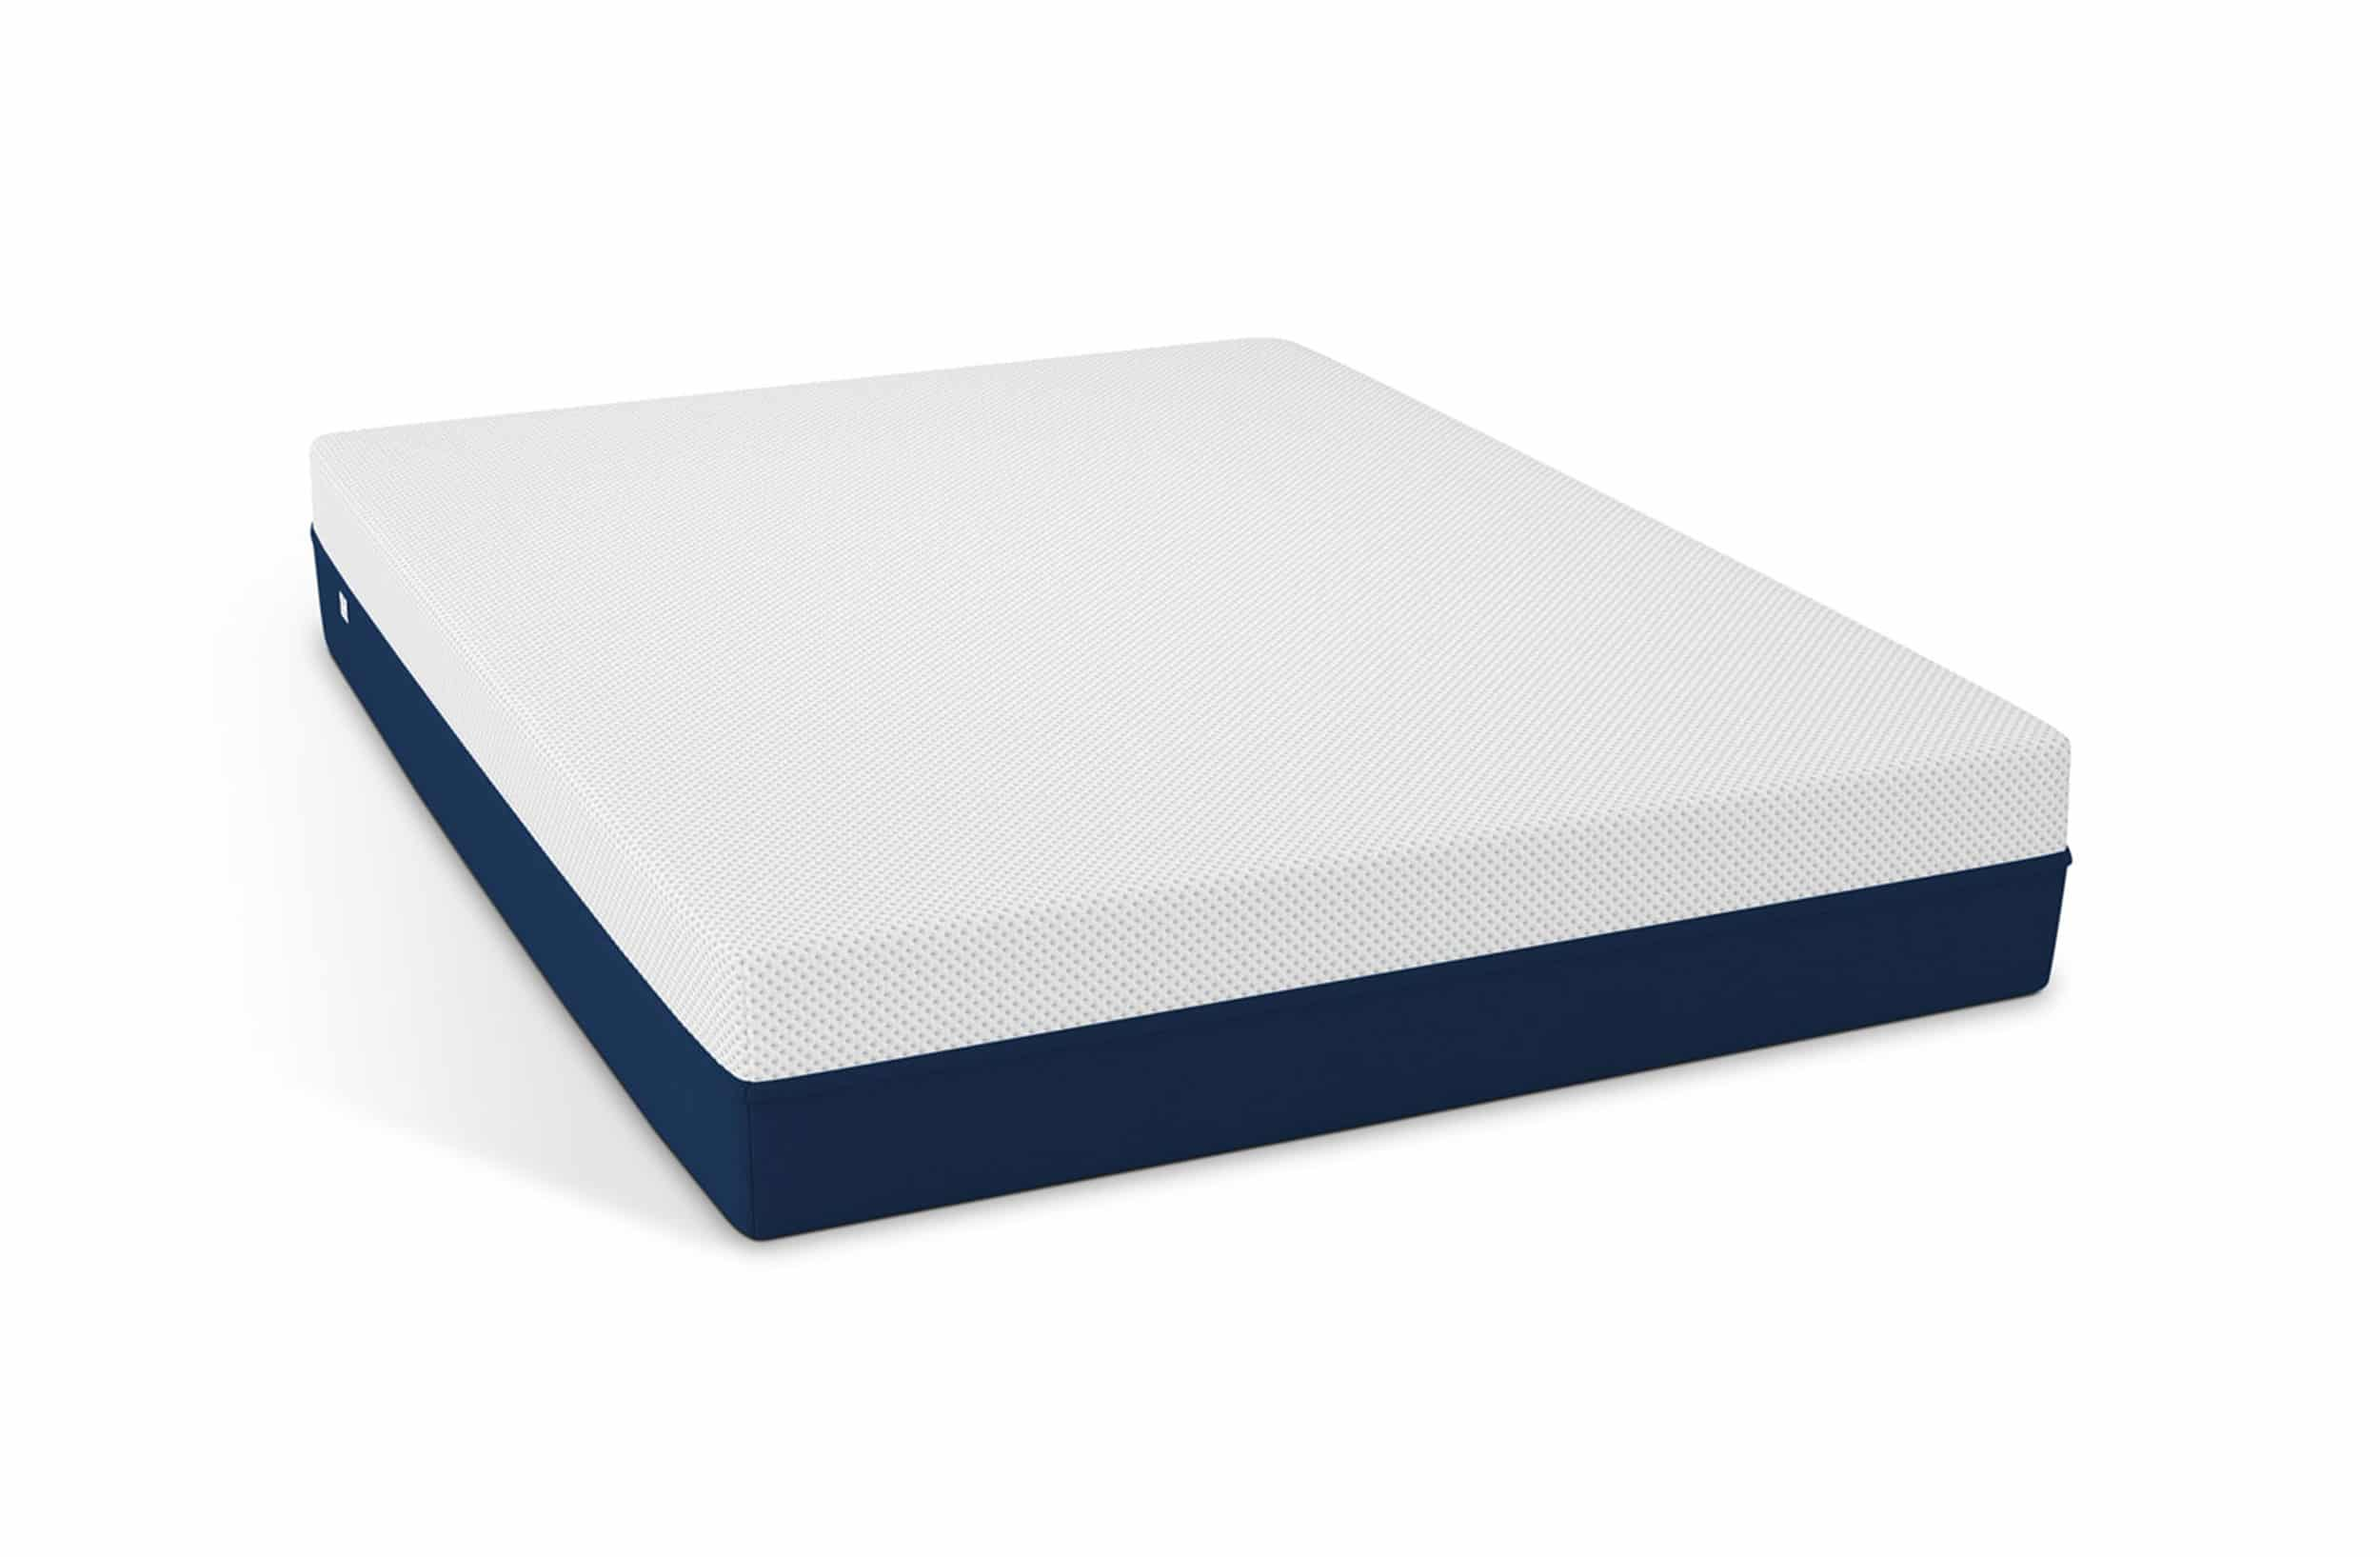 Memory Foam Mattress Guide How To Find The Most Comfortable Mattress Sleep Junkie